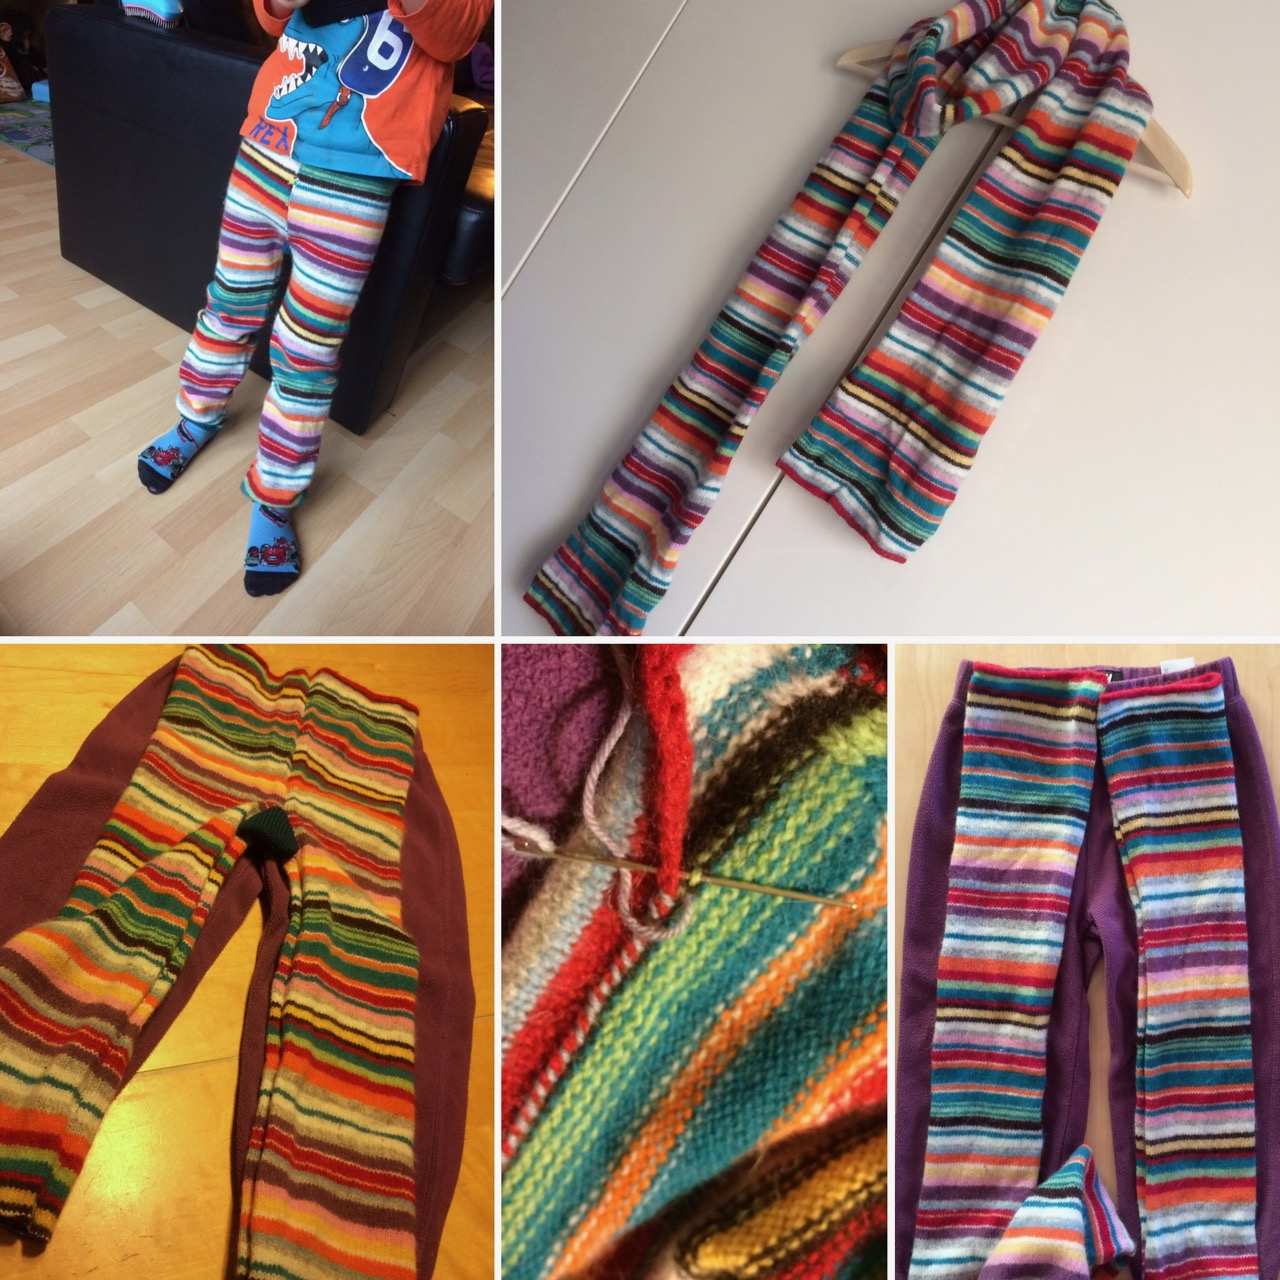 An old H&M wool scarf turned into a pair of funky striped pants for Mr. T